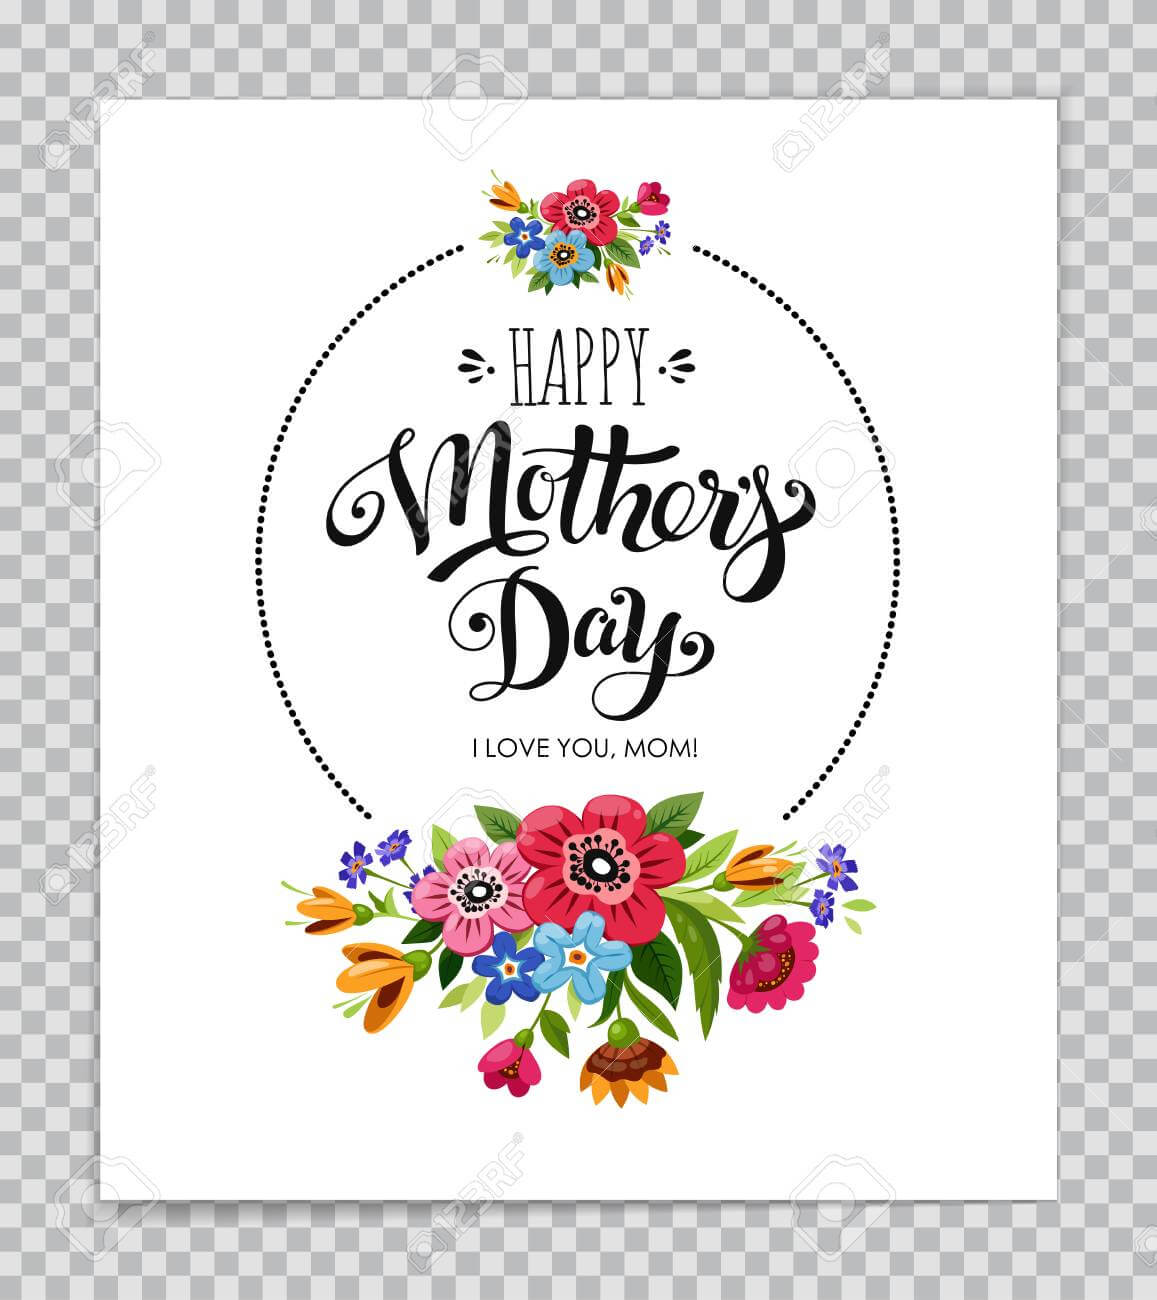 Mothers Day Card Template With Floral Design On Transparent Background. Pertaining To Mothers Day Card Templates